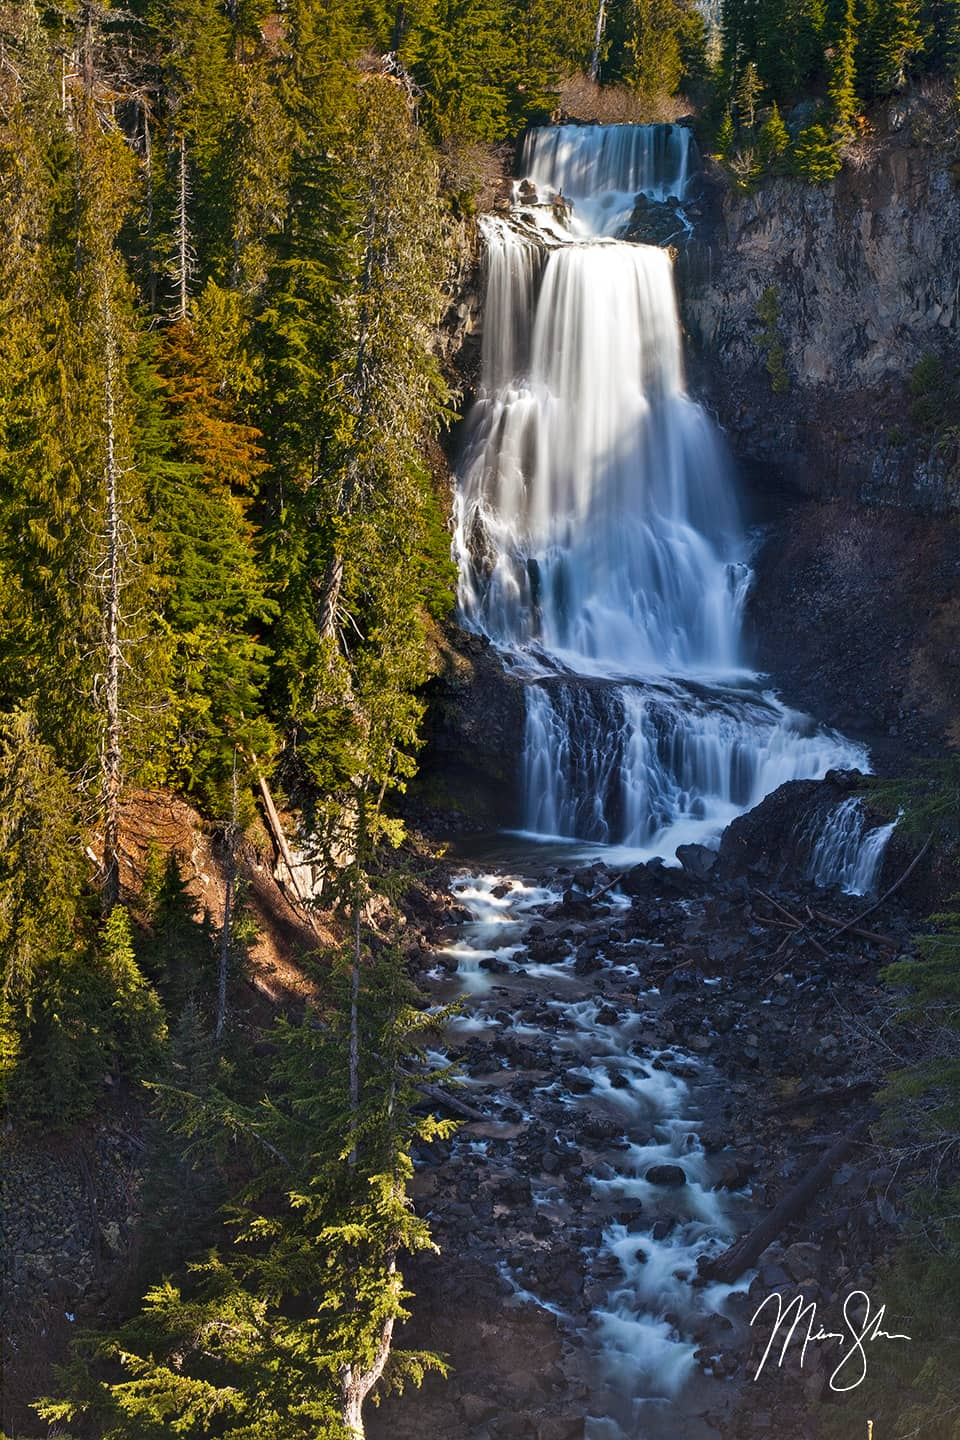 Open edition fine art print of Alexander Falls from Mickey Shannon Photography. Location: Alexander Falls, Callaghan Valley, British Columbia, Canada